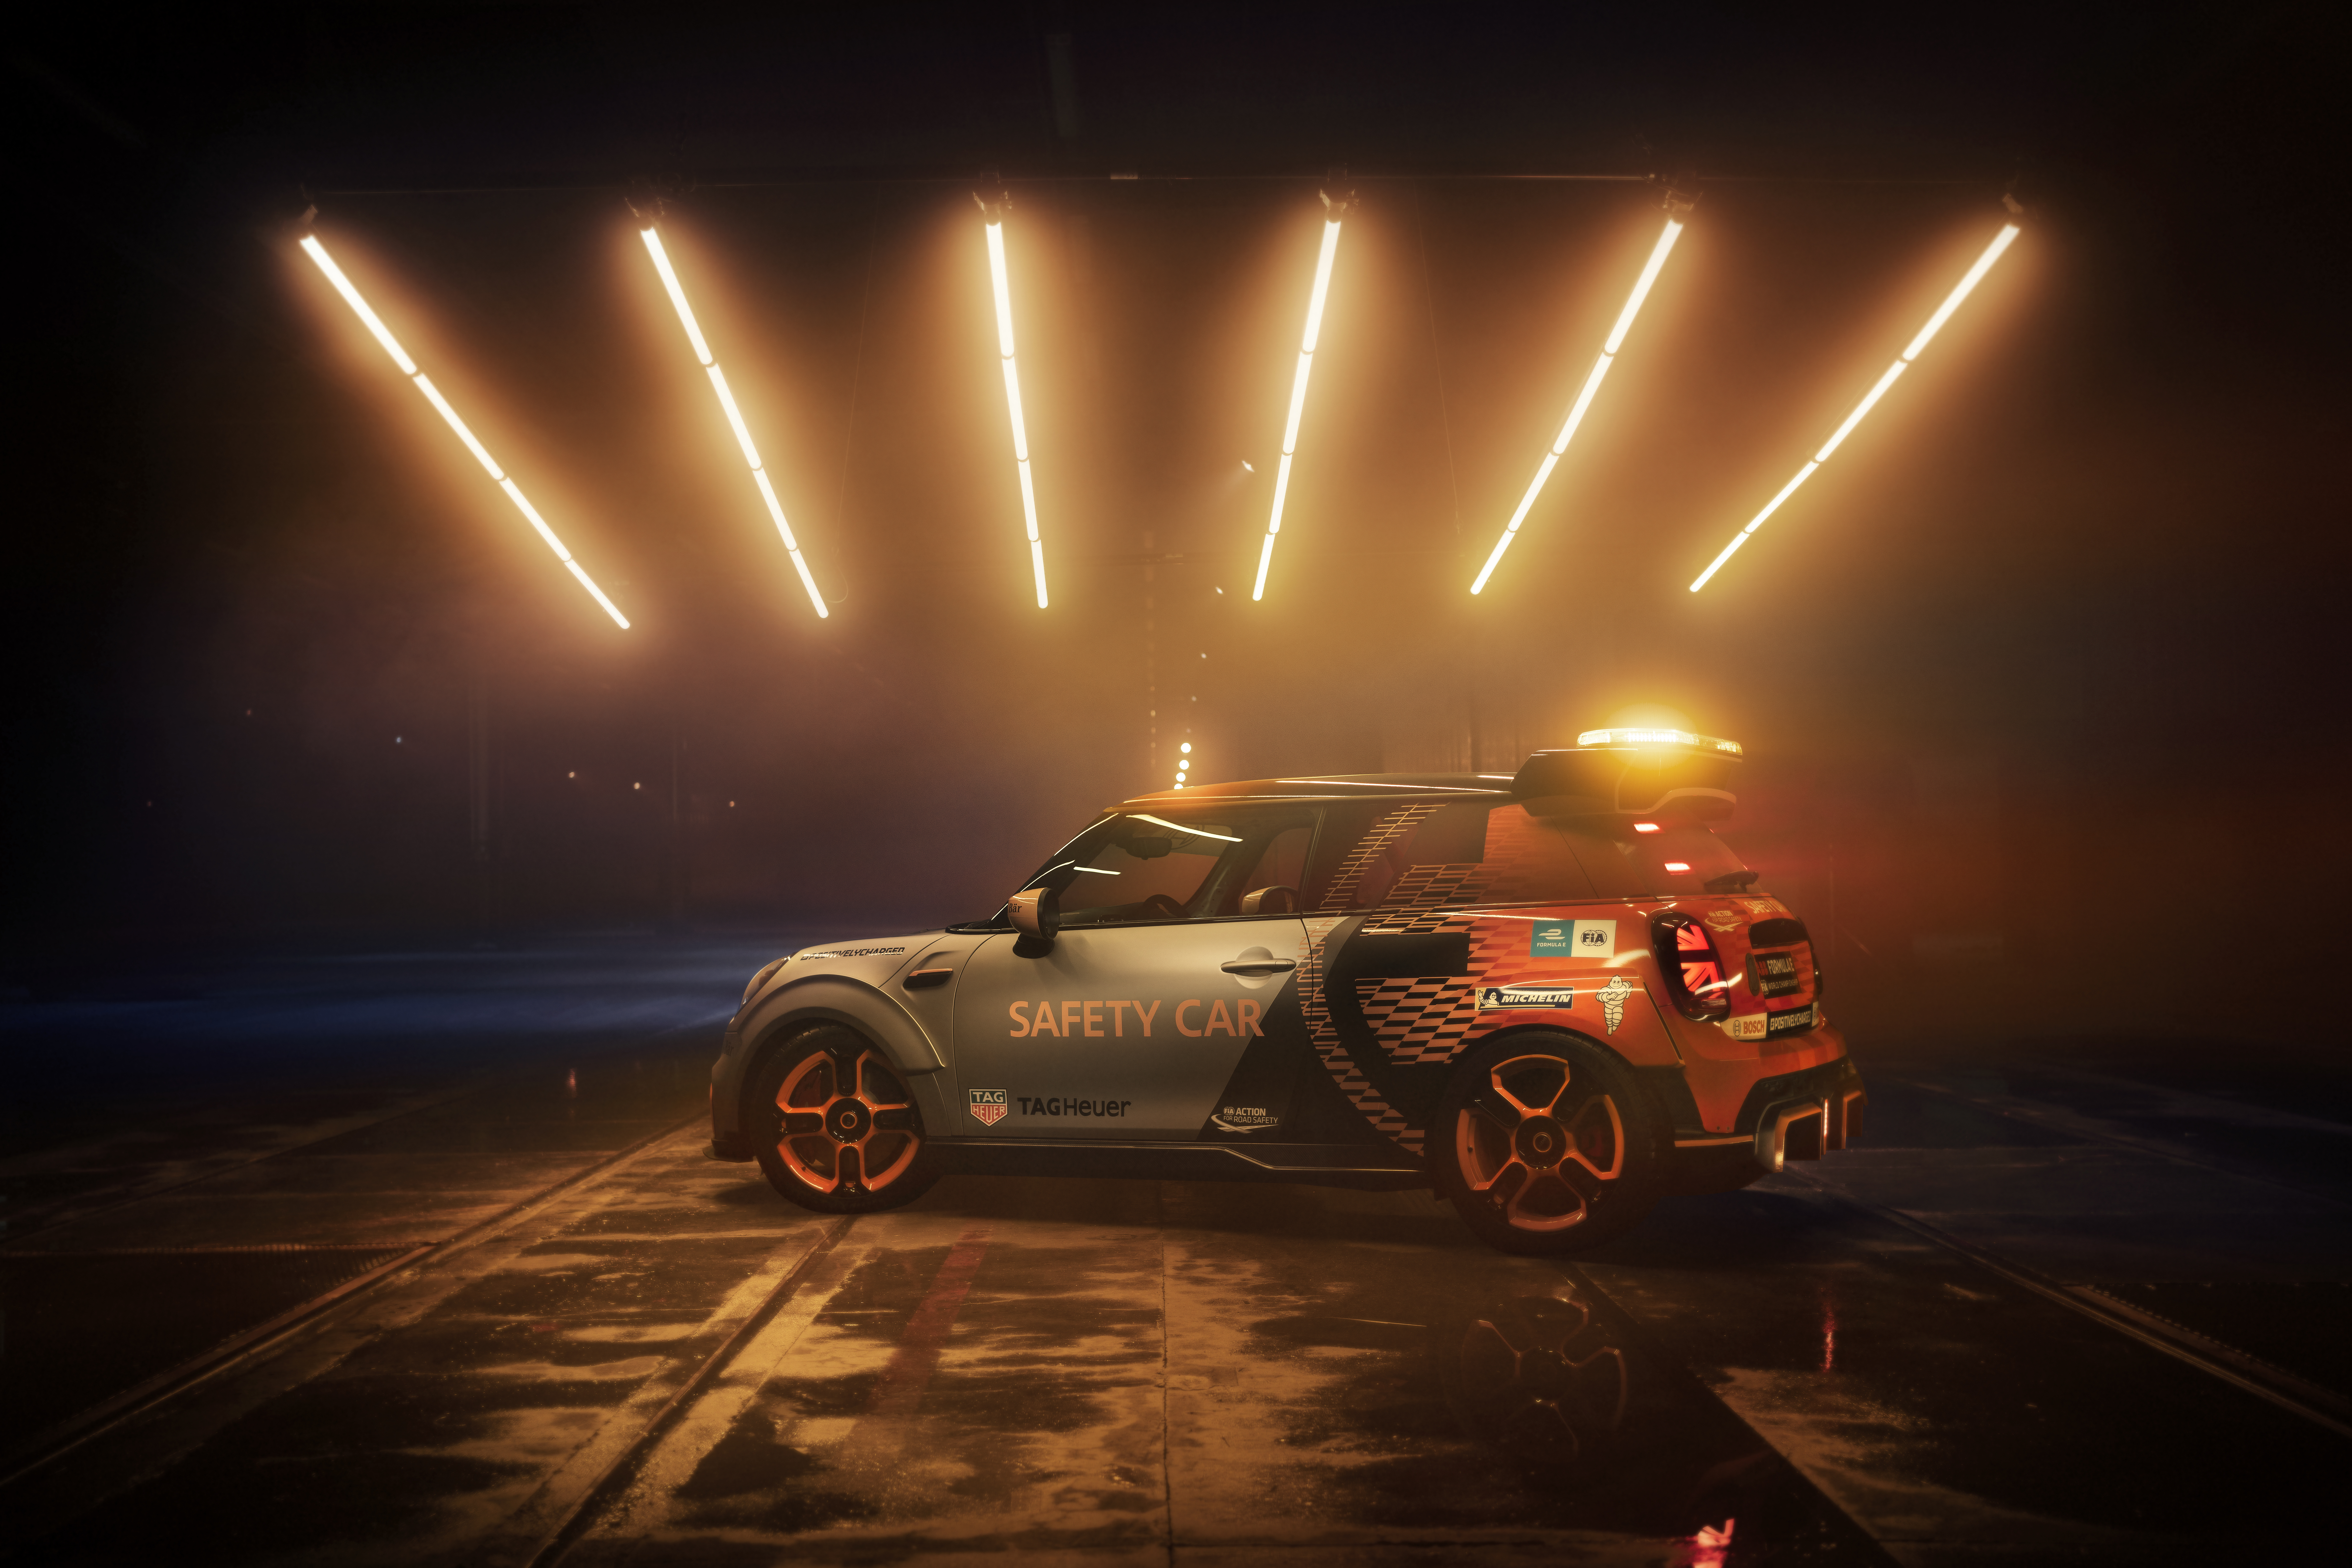 mini electric pacesetter 2021 rear 4k 1620169518 - MINI Electric Pacesetter 2021 Rear 4k - MINI Electric Pacesetter 2021 Rear 4k wallpapers